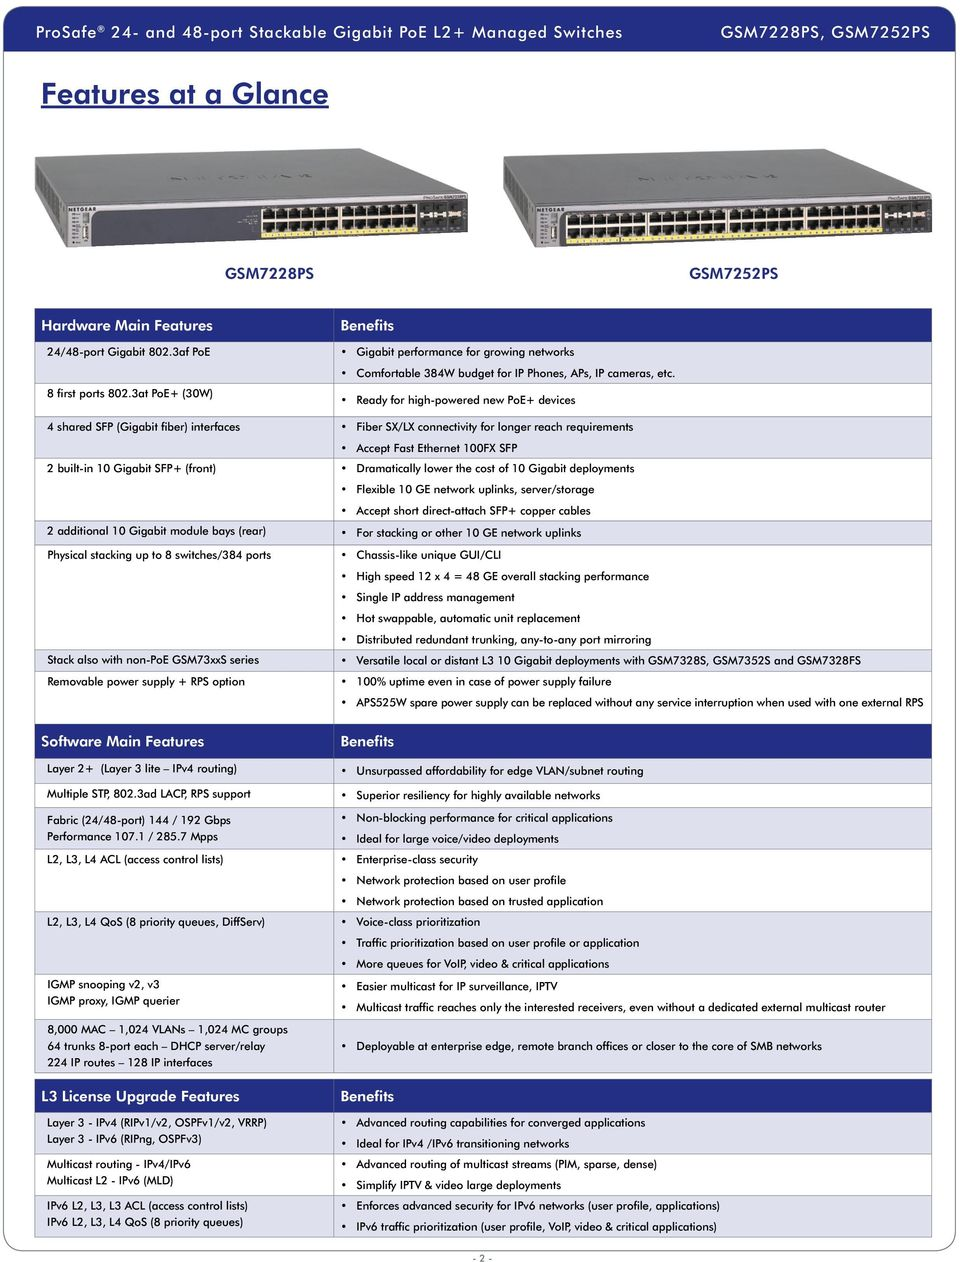 Ready for high-powered new PoE+ devices 4 shared SFP (Gigabit fiber) interfaces Fiber SX/LX connectivity for longer reach requirements Accept Fast Ethernet 100FX SFP 2 built-in 10 Gigabit SFP+